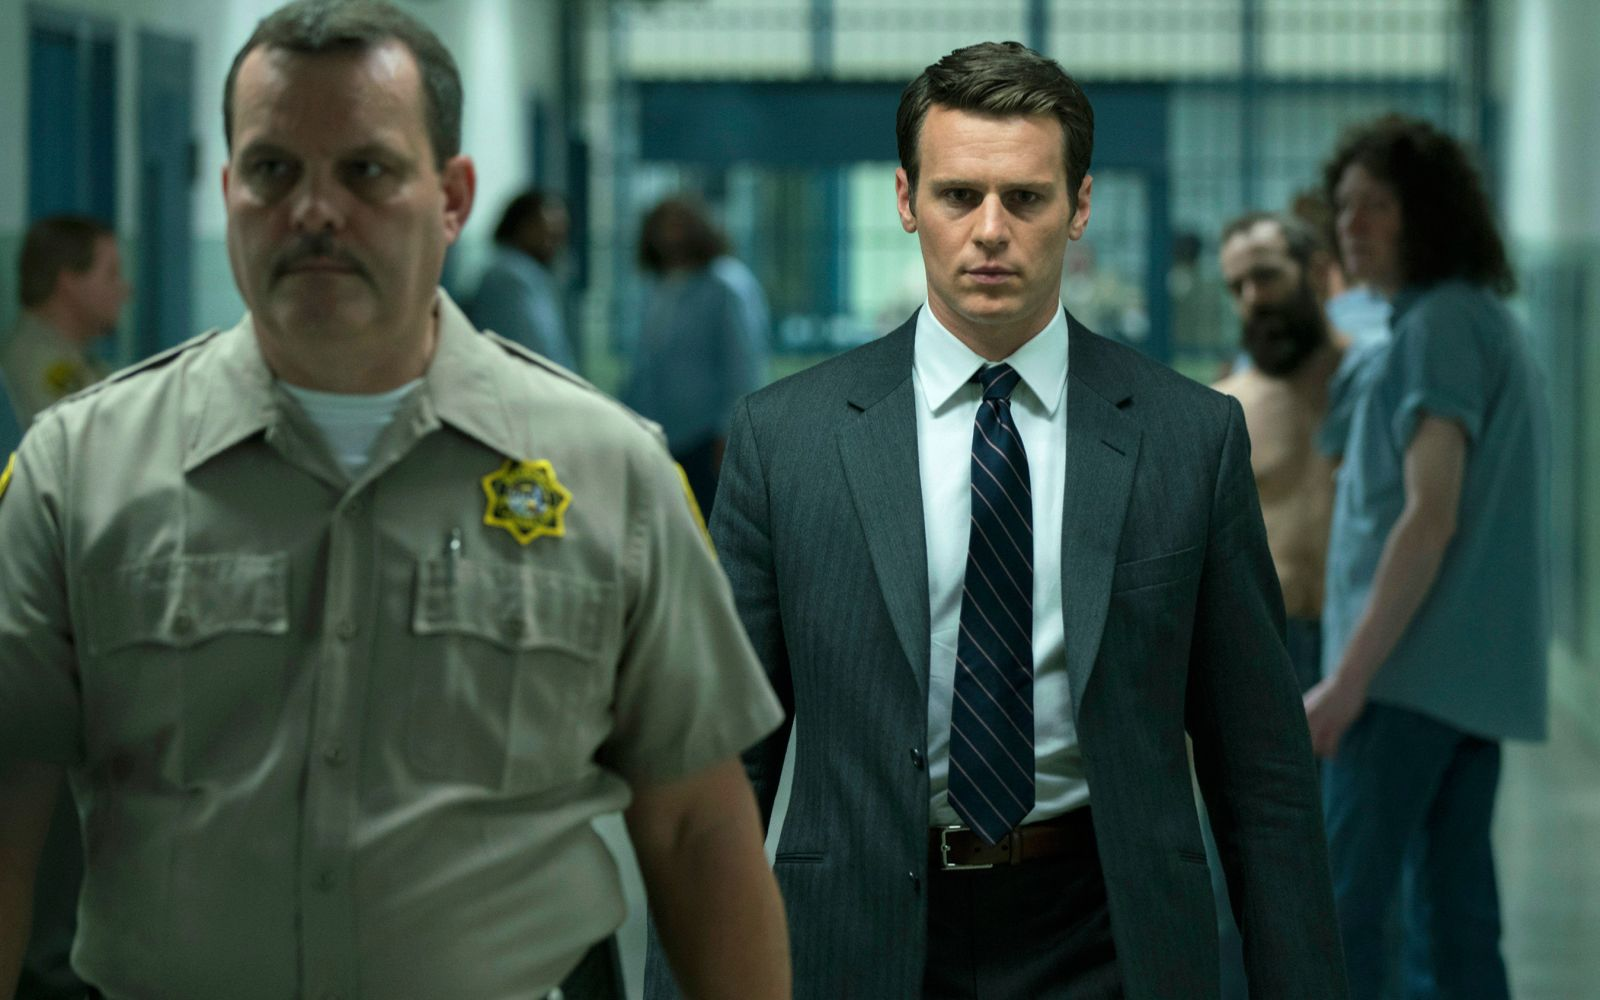 Best Mindhunter Quotes from Murderers During Holden Ford Interviews